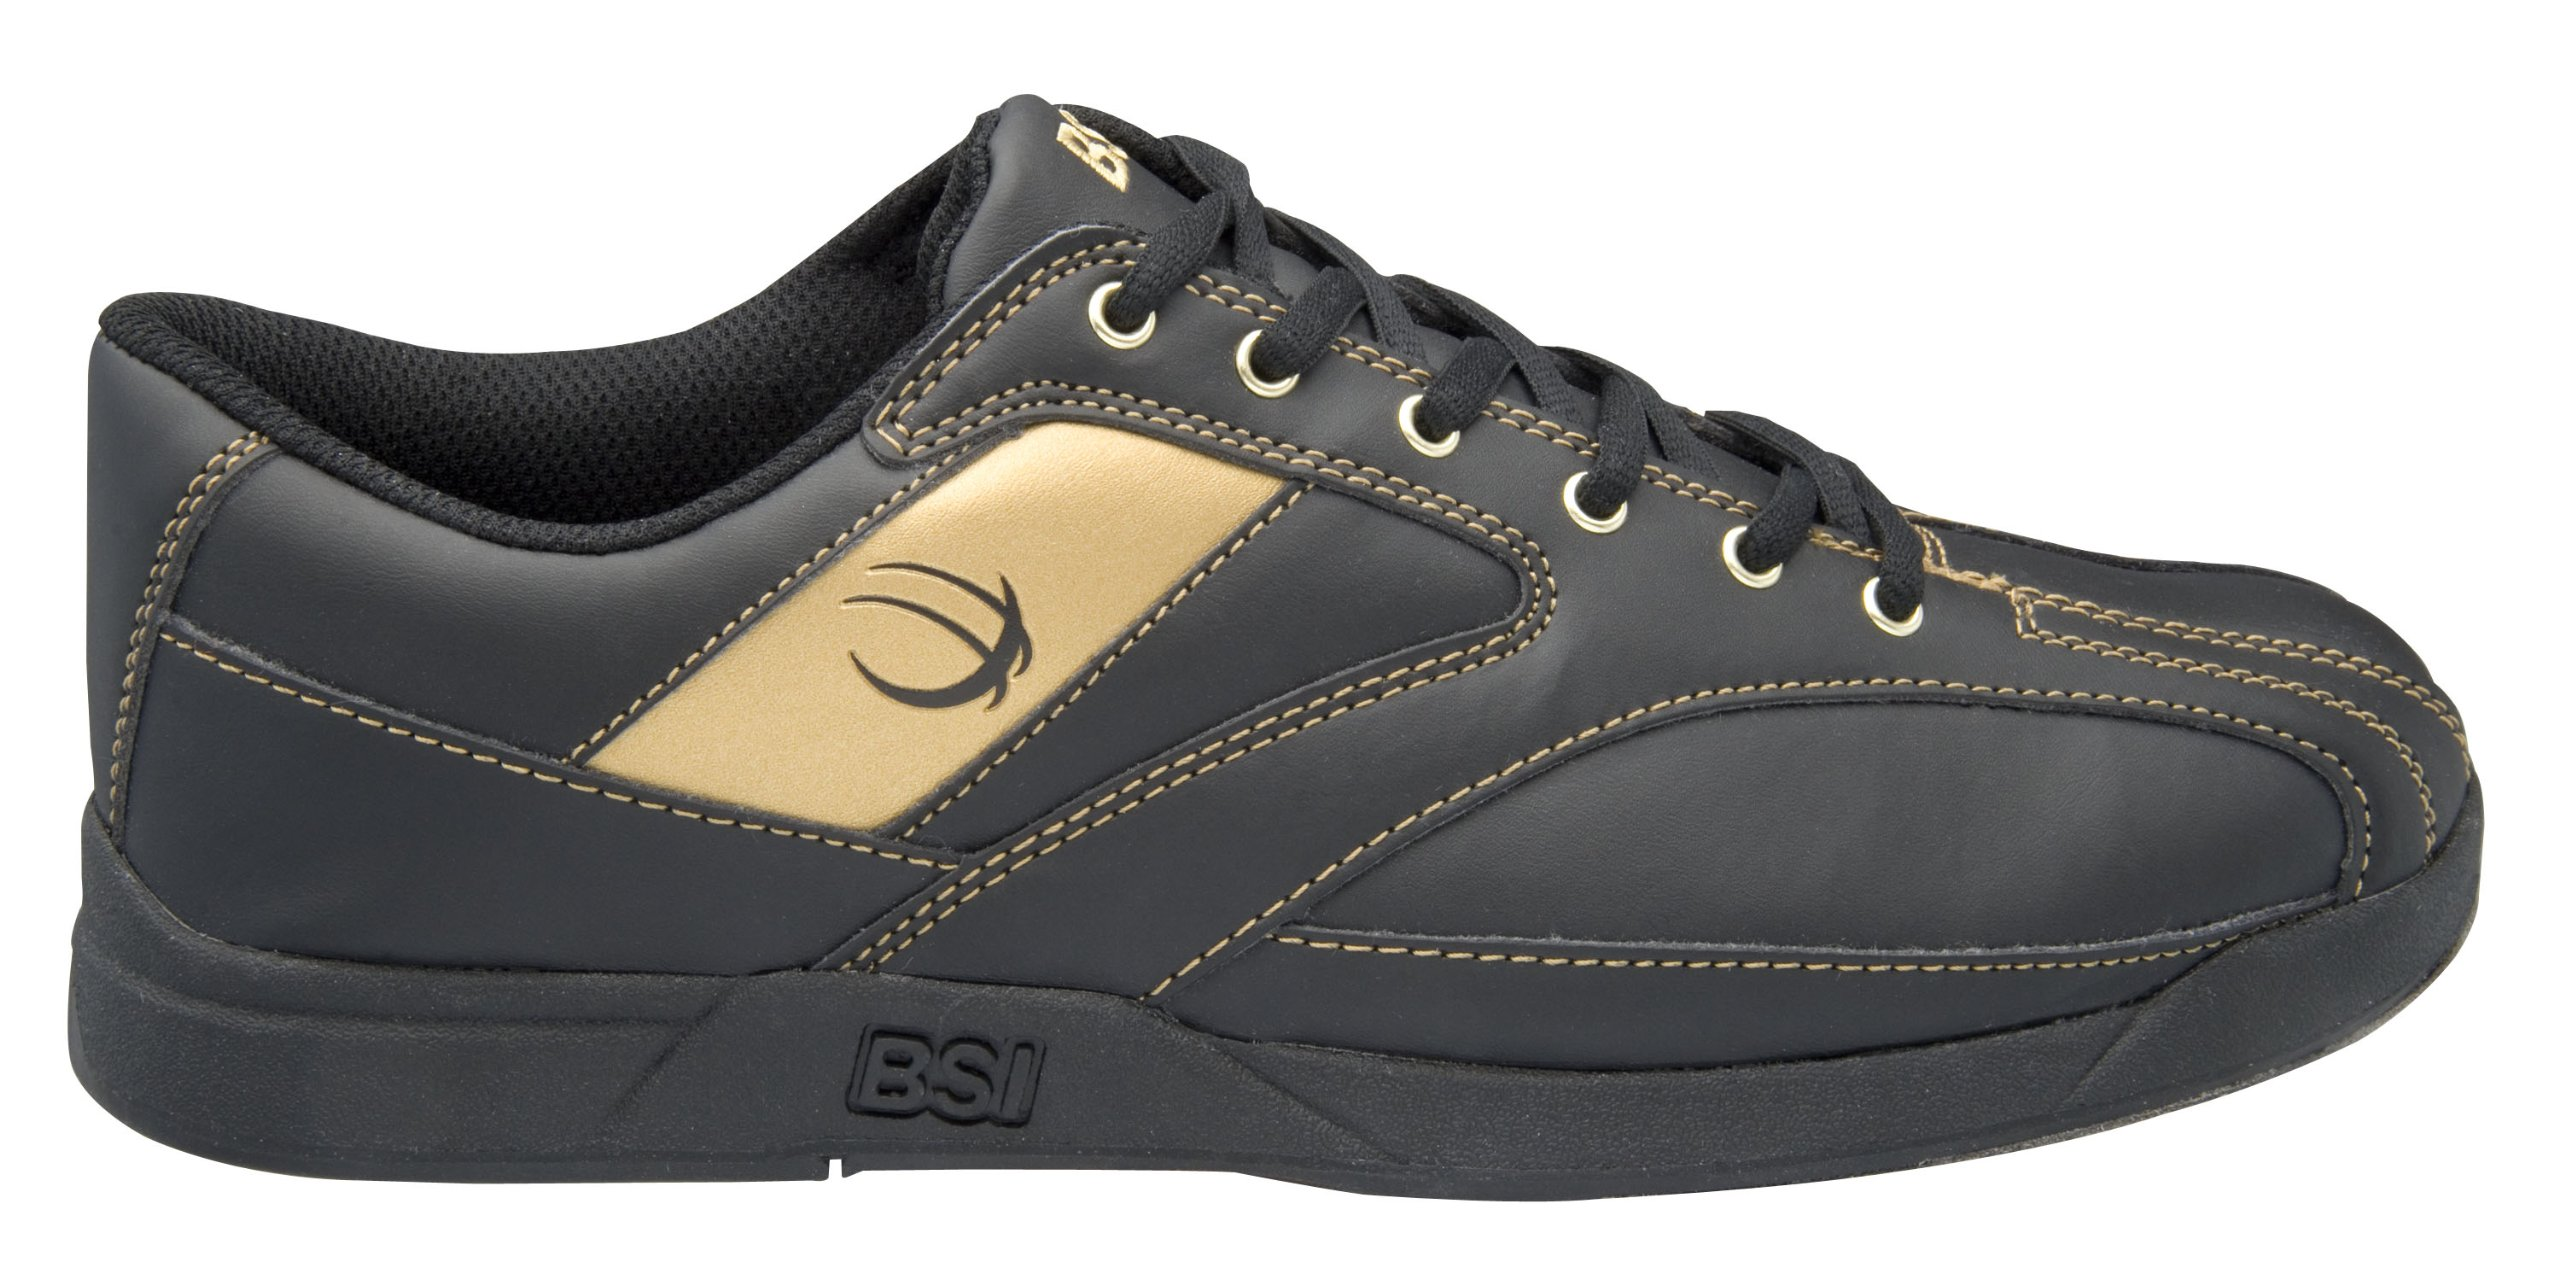 BSI Men's 571 Bowling Shoe, Black/Gold, Size 6